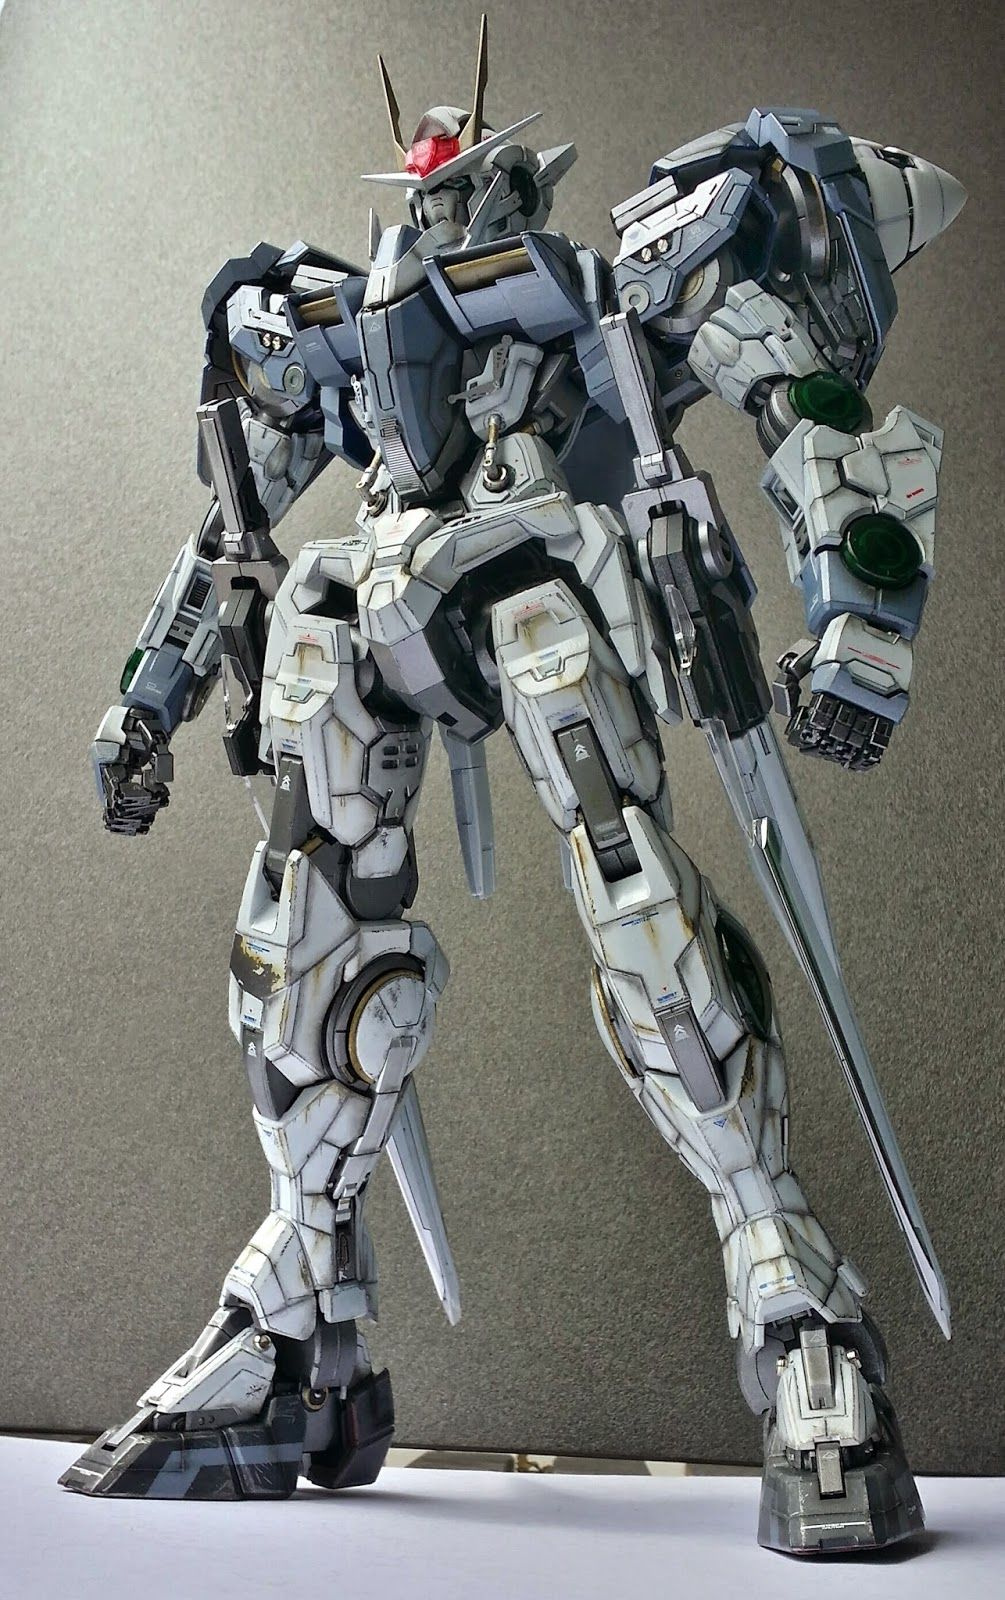 sports shoes b8ee2 163c4 GUNDAM GUY: PG 1/60 00 Raiser - Customized Build | Pla-Model ...